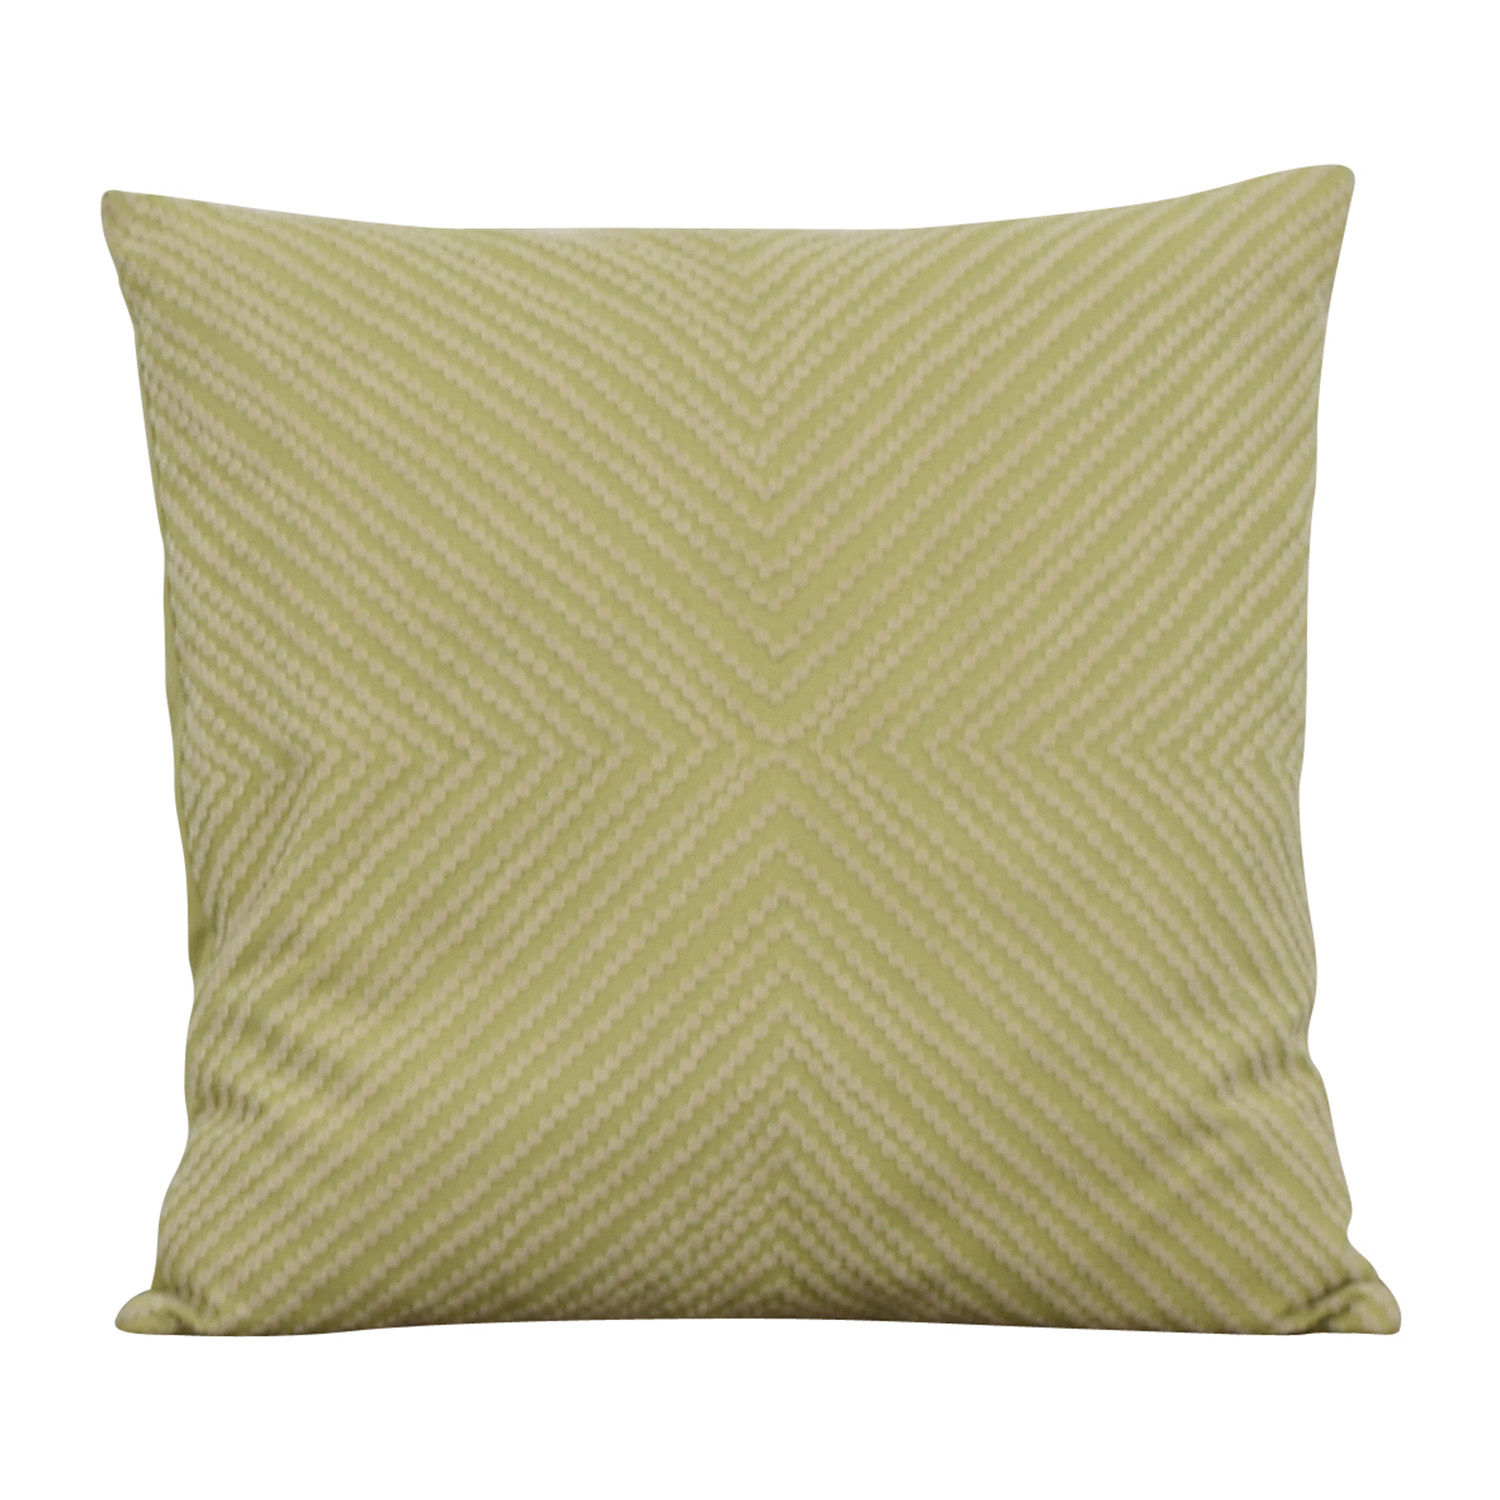 Lime Green and Cream Decorative Toss Pillow Decorative Accents